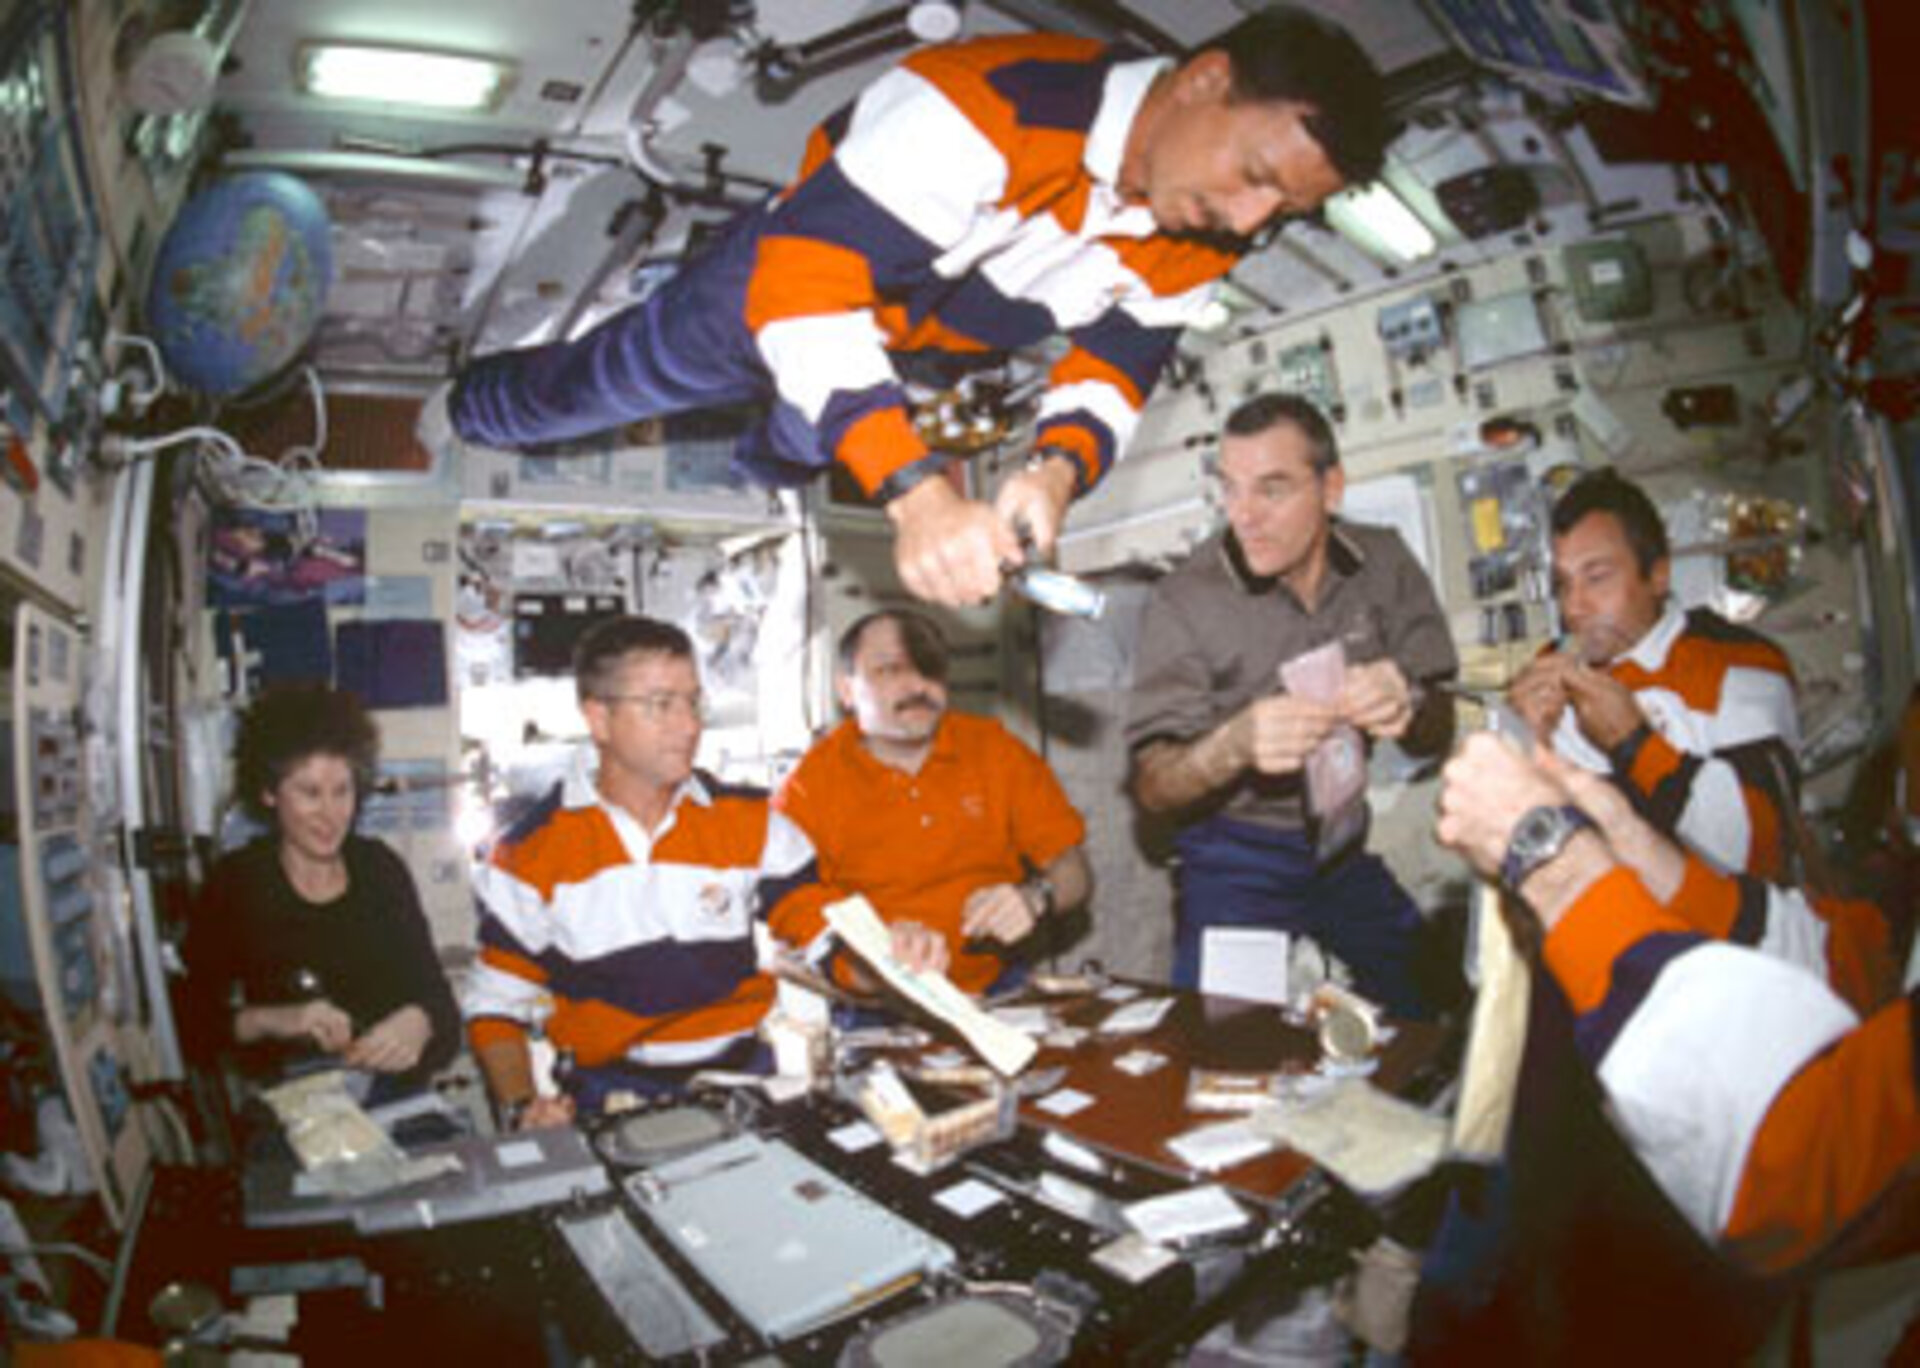 Astronauts share a meal